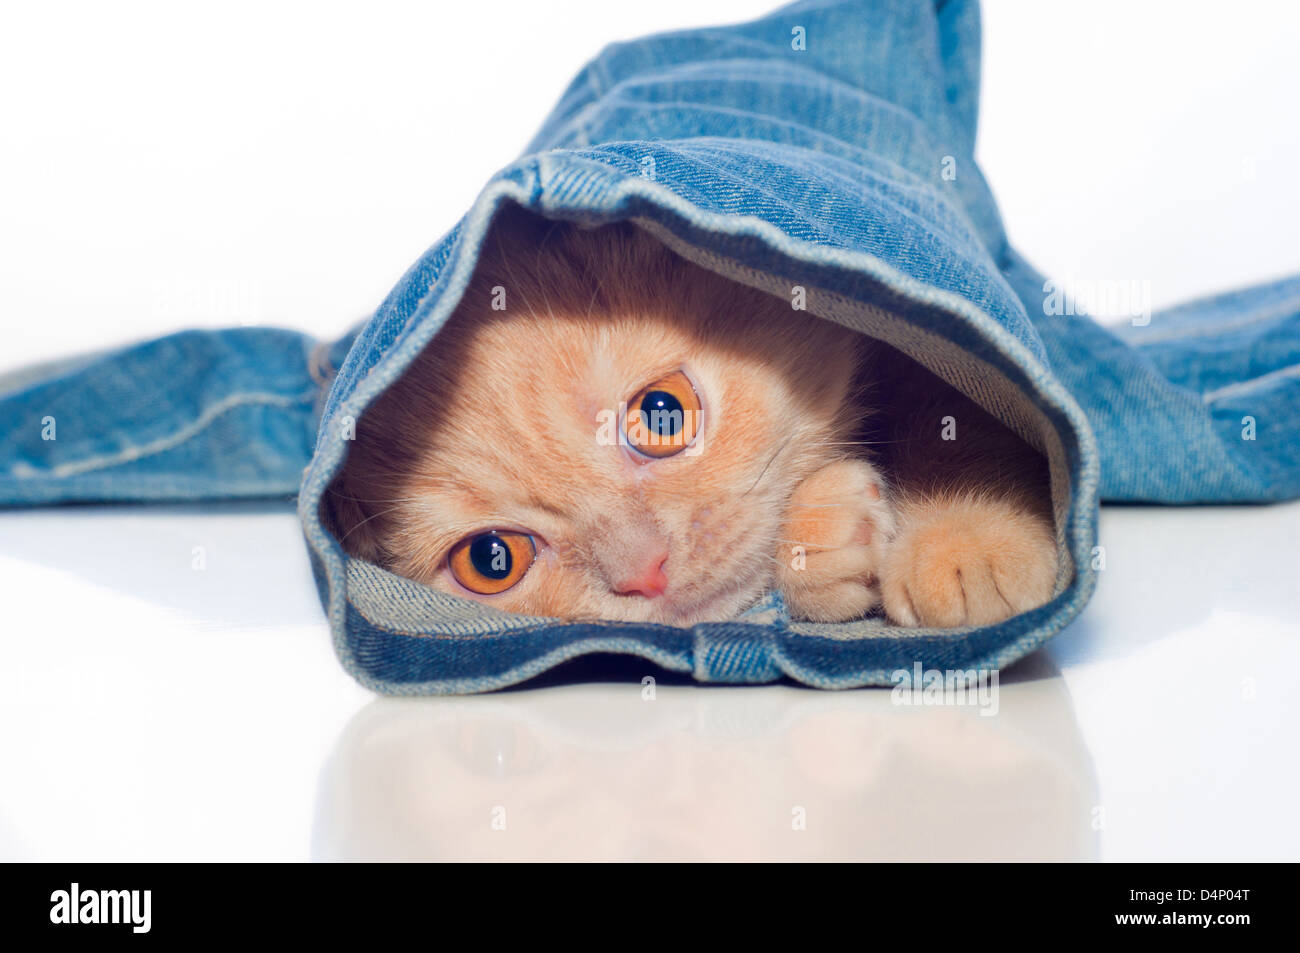 the red kitty is in one trouser-leg of blue jeans on a white background - Stock Image